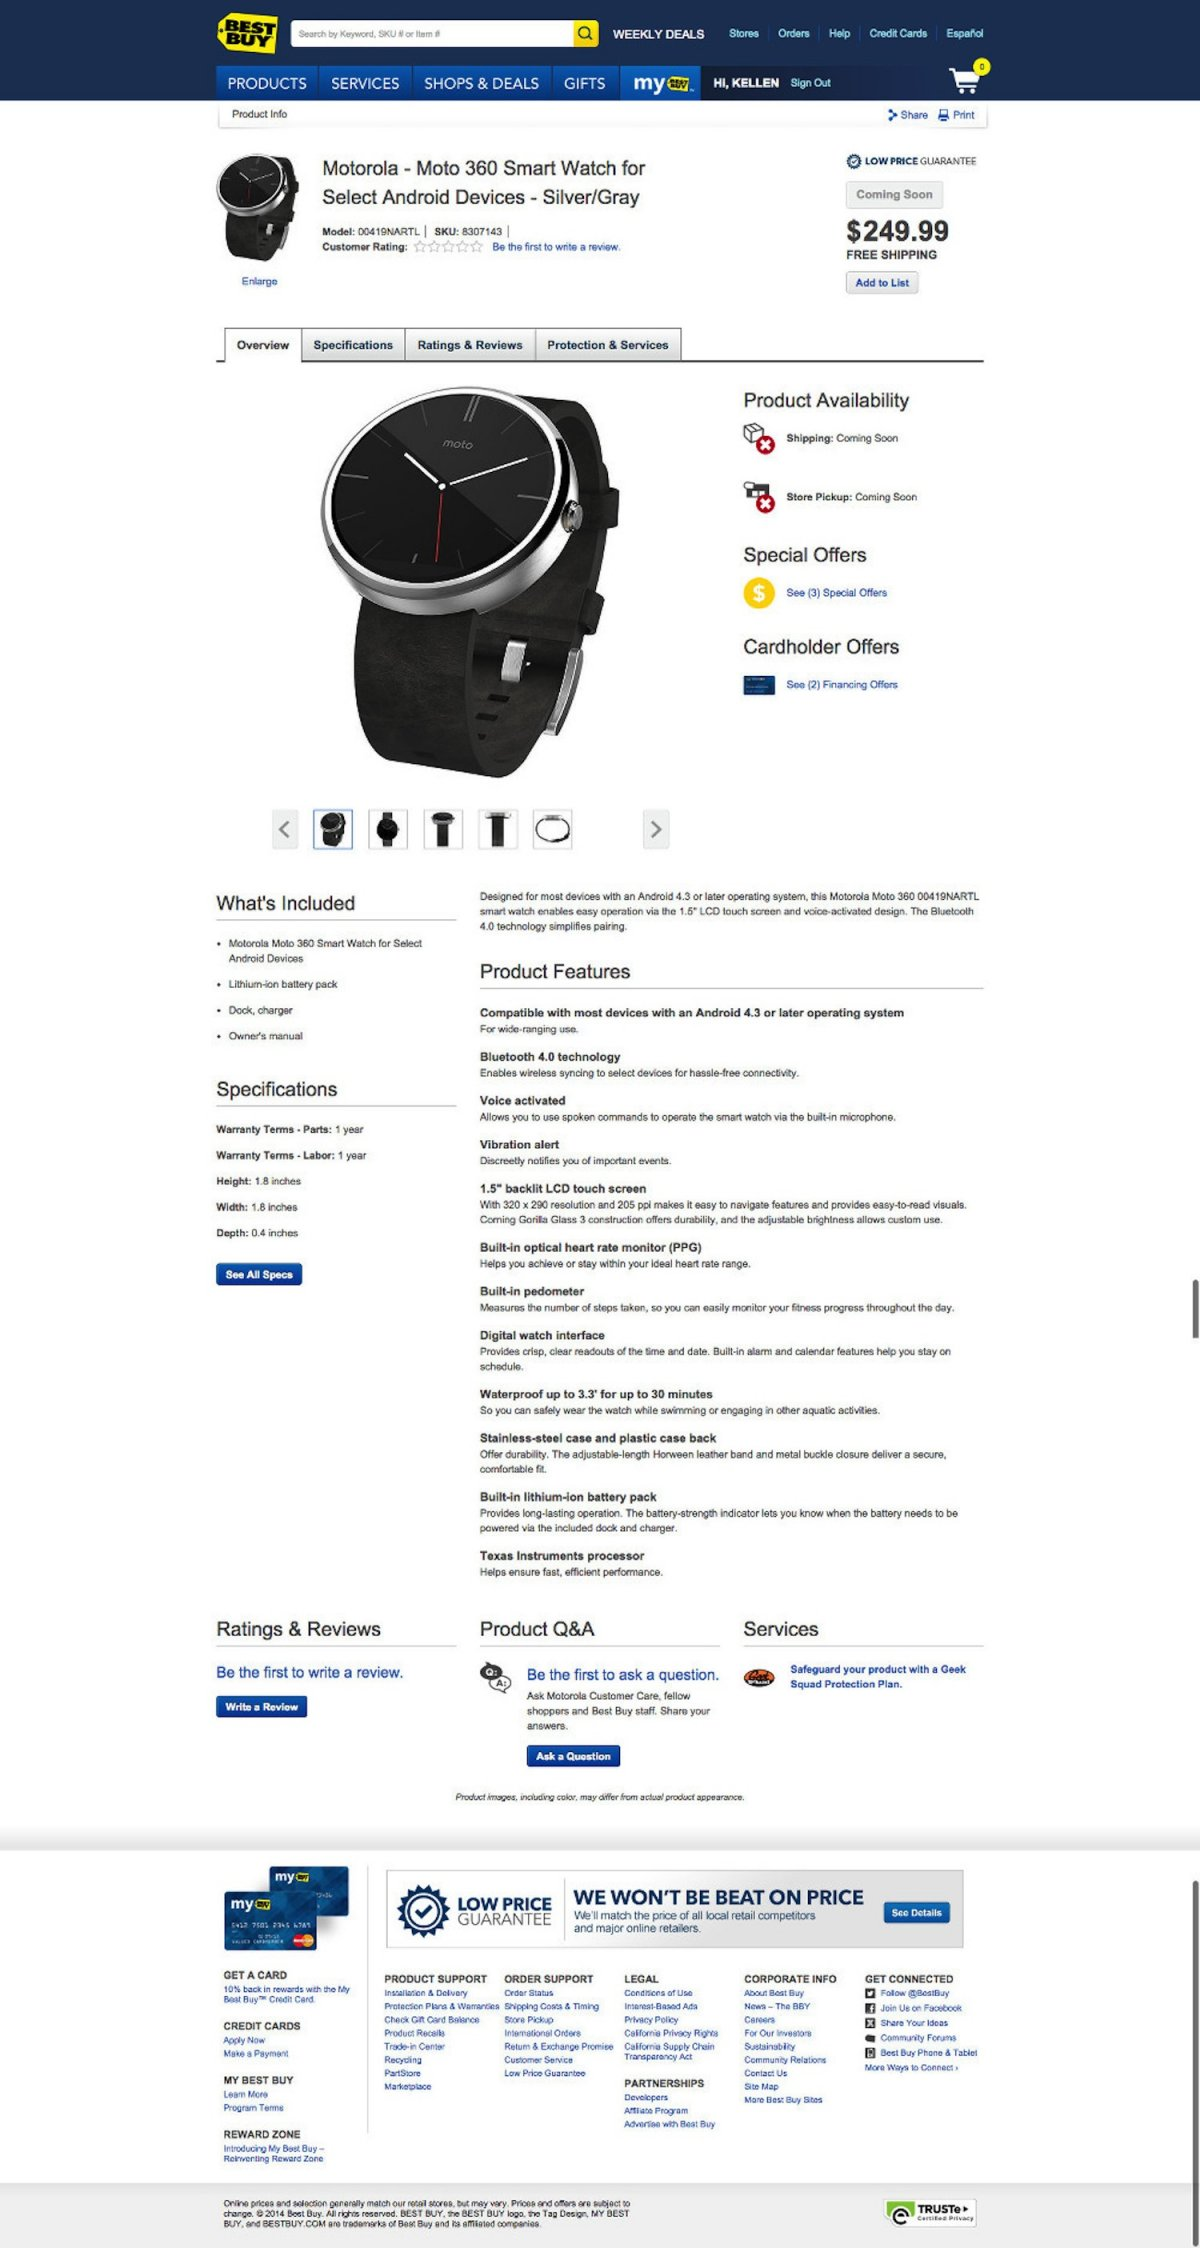 Best Buy leaks Moto 360 watch price and specs